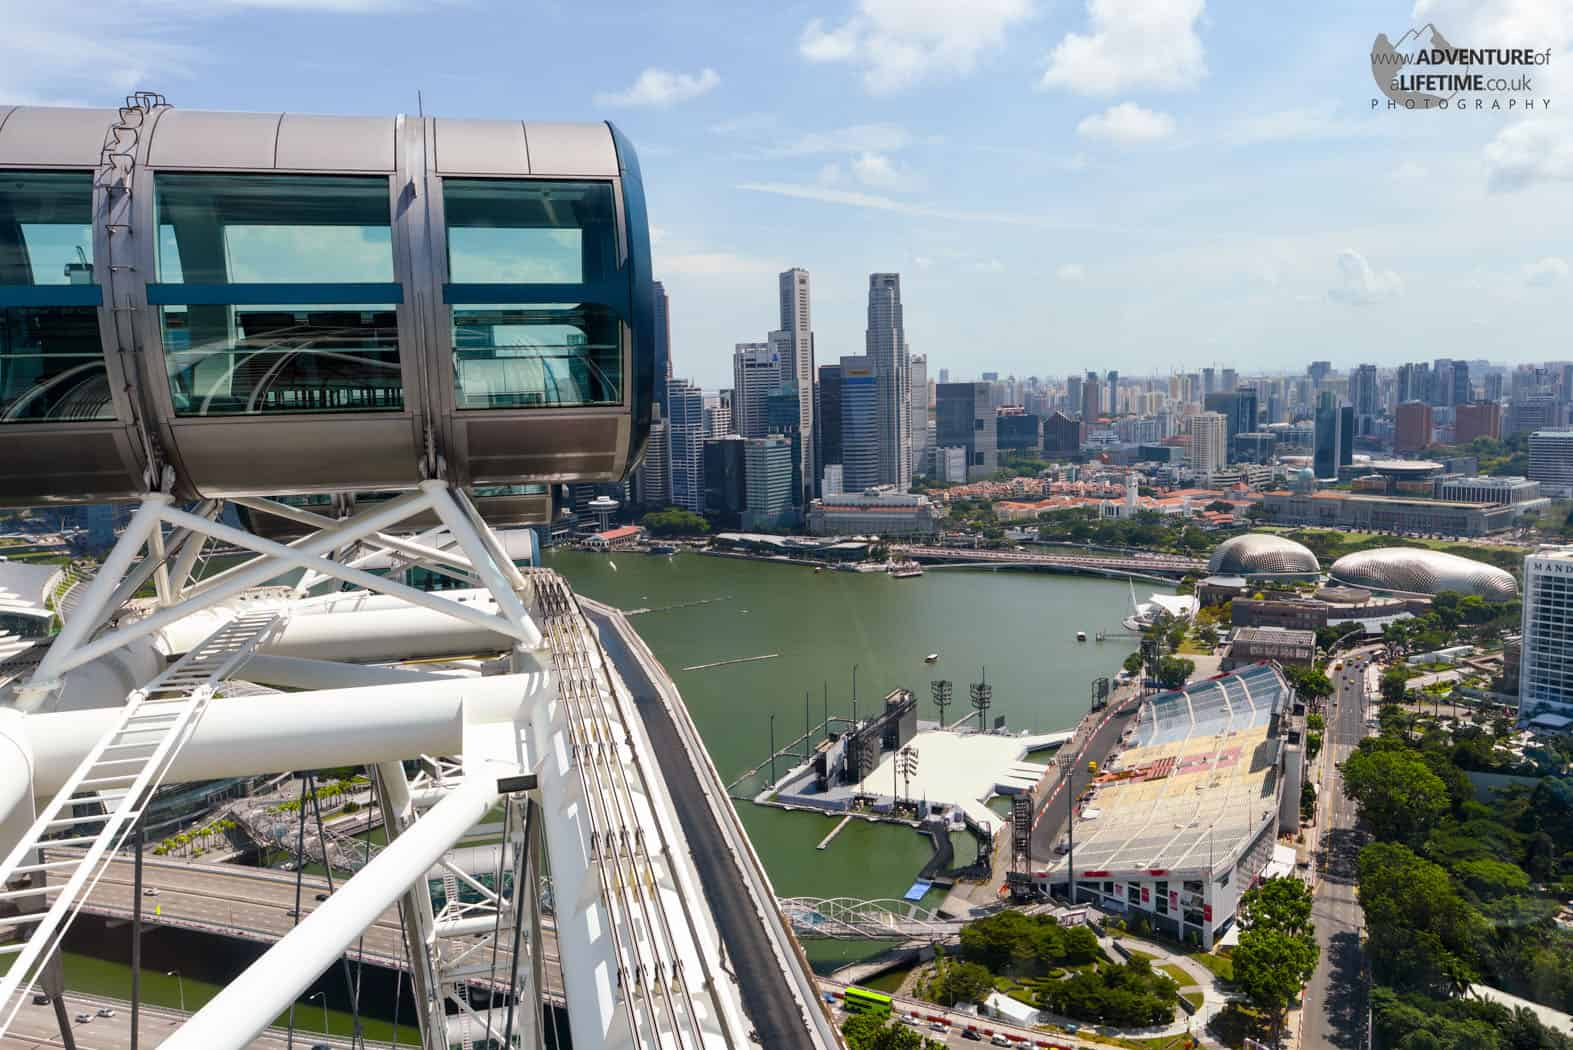 Top of The Singapore Flyer